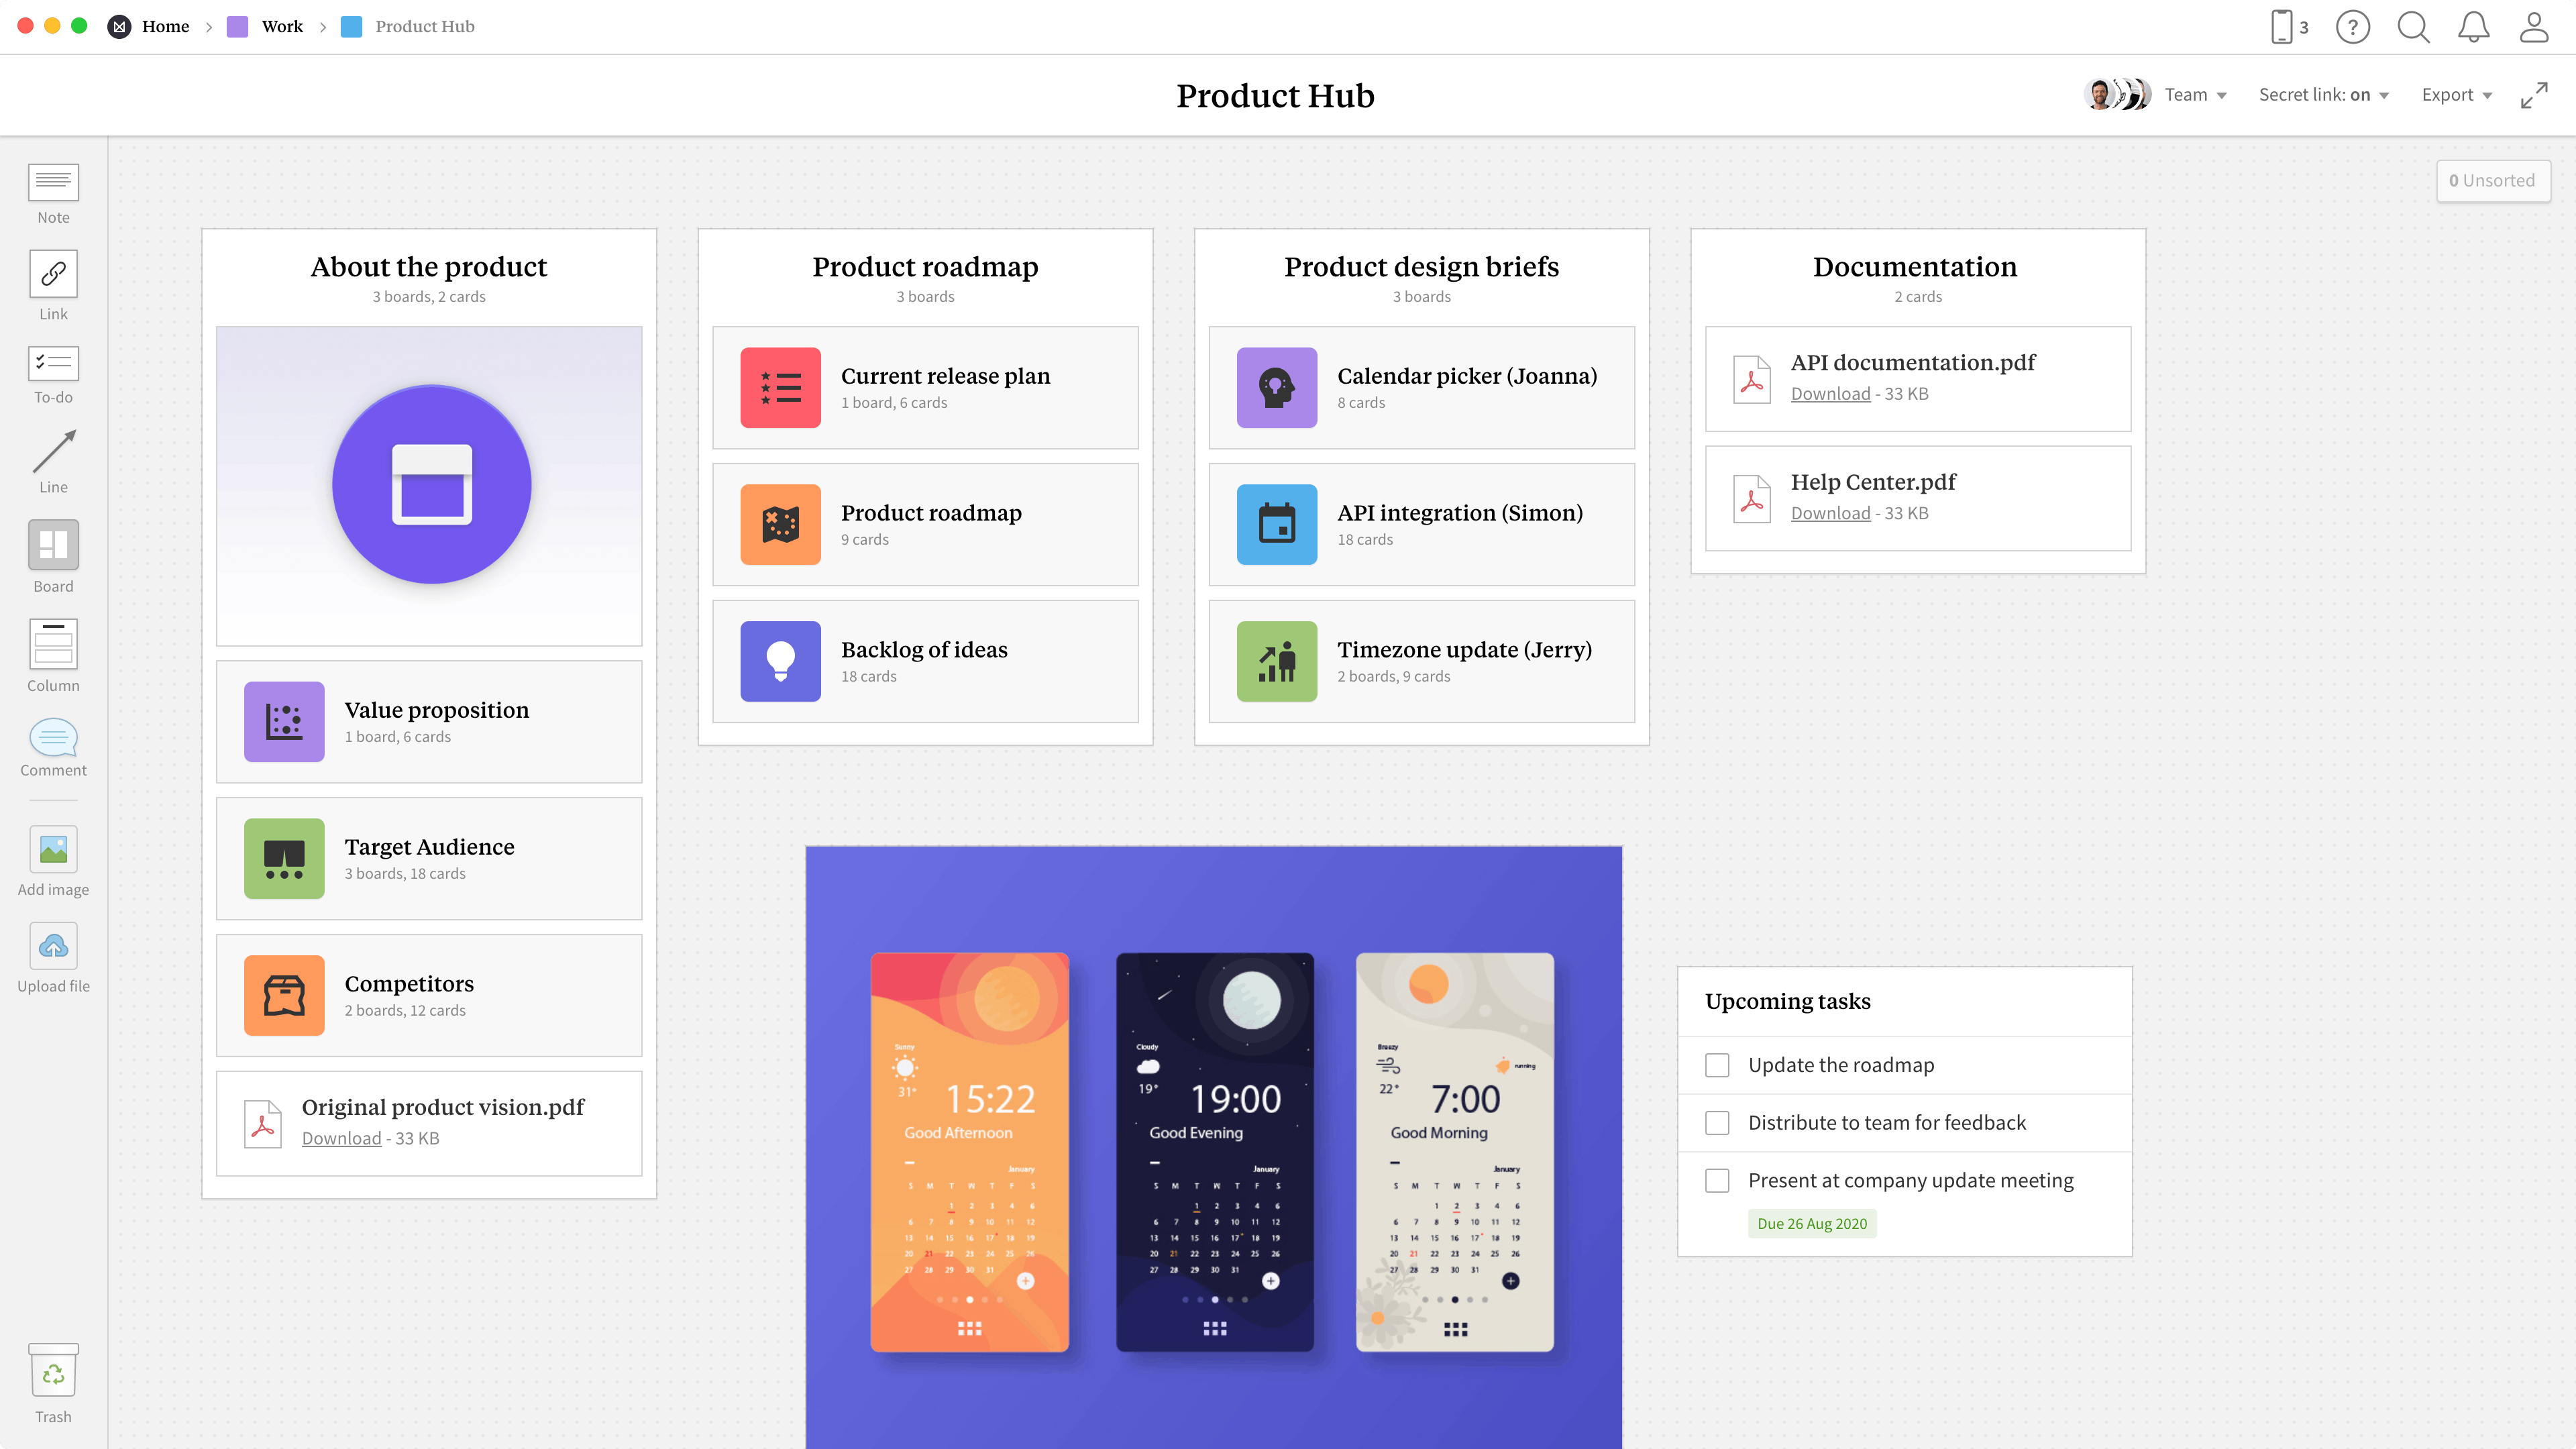 Completed Product Hub template in Milanote app